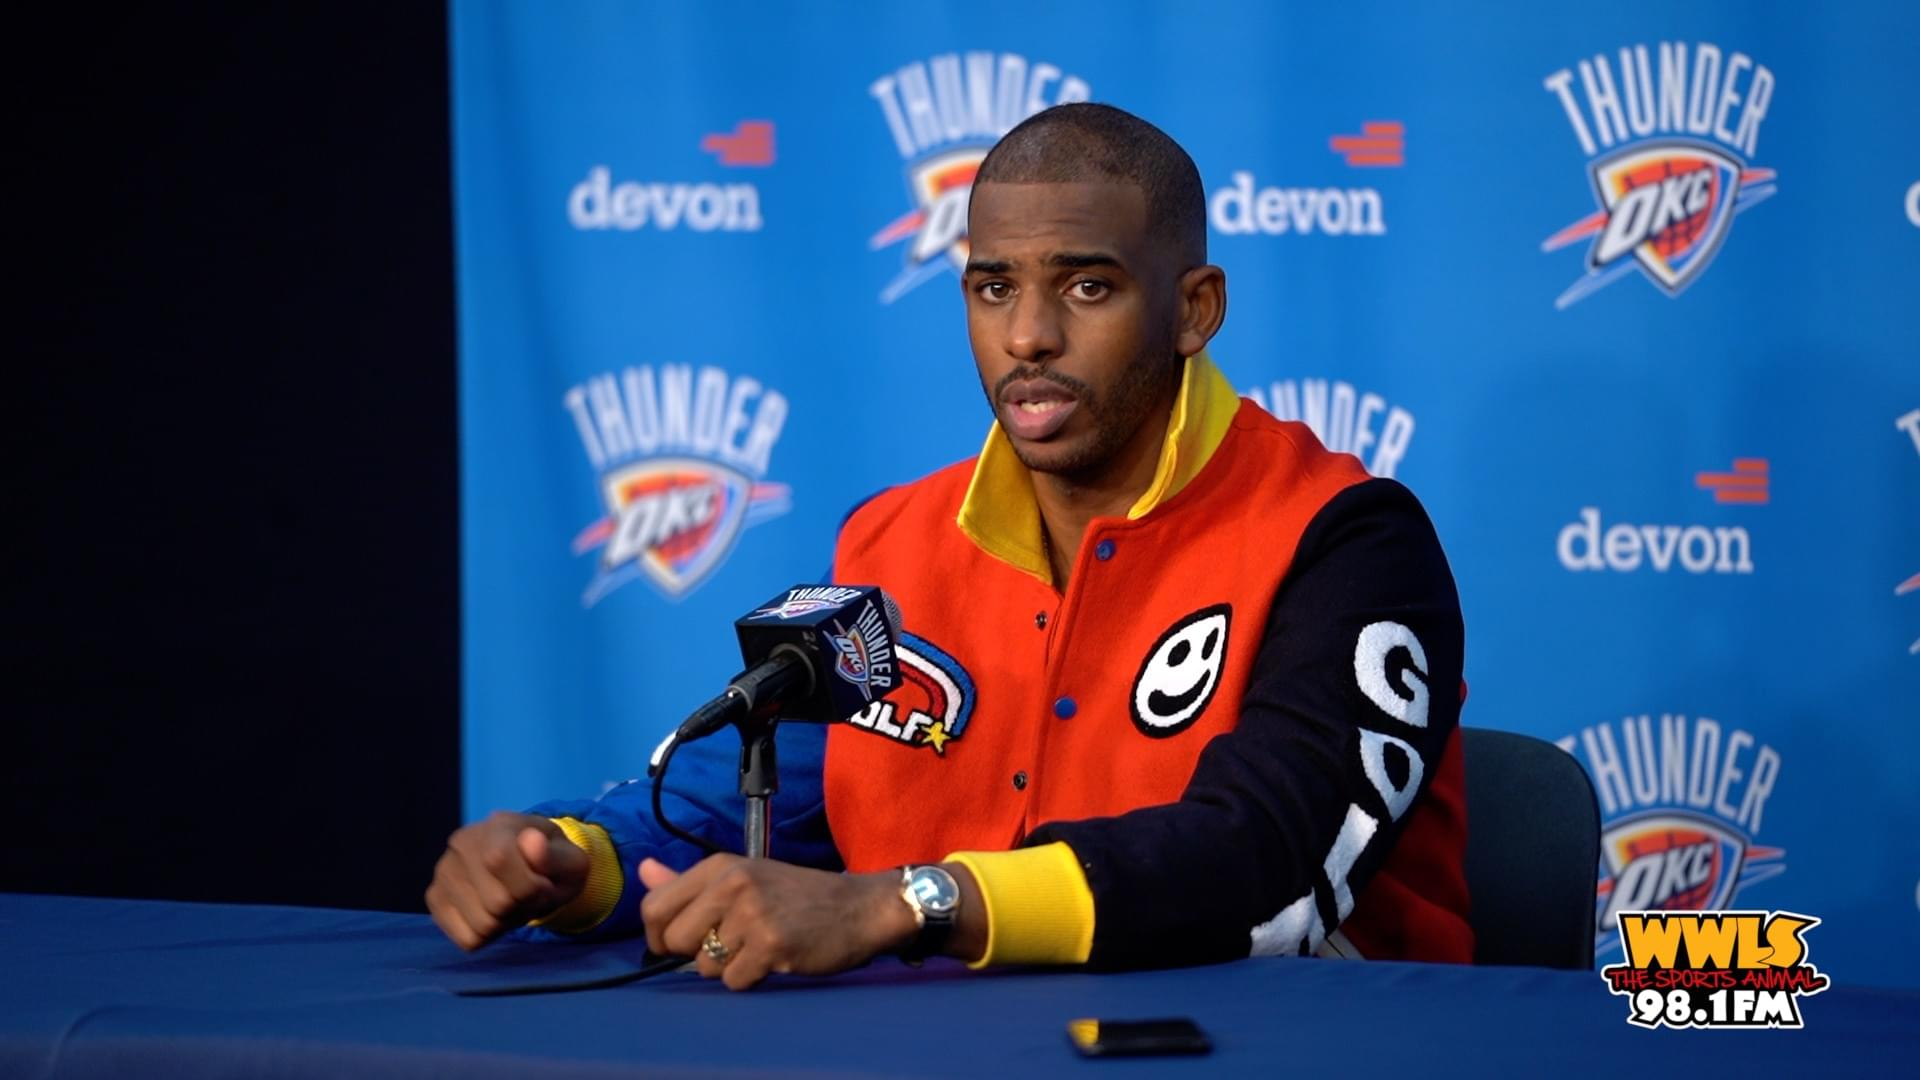 CHRIS PAUL TALKS TO MEDIA AFTER 113-92 WIN OVER HOUSTON ROCKETS